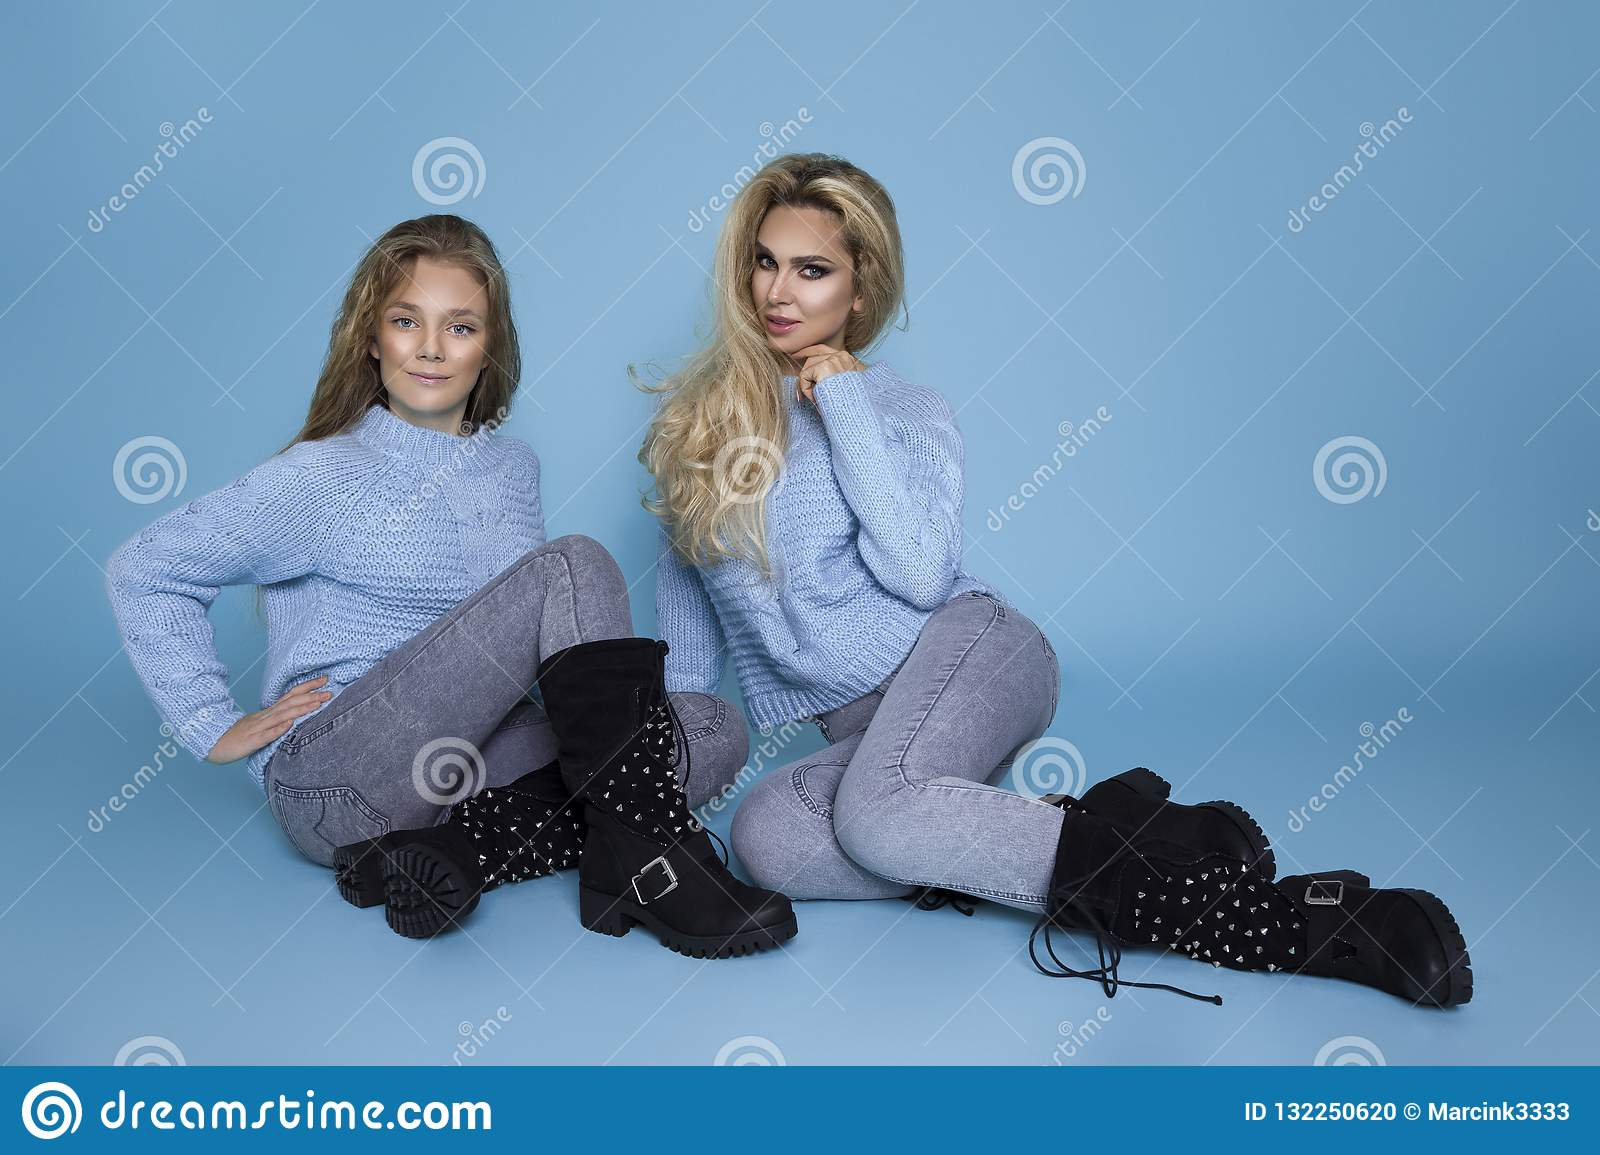 Beautiful blond girls, mother with daughter in autumn winter clothing on a blue background in the studio